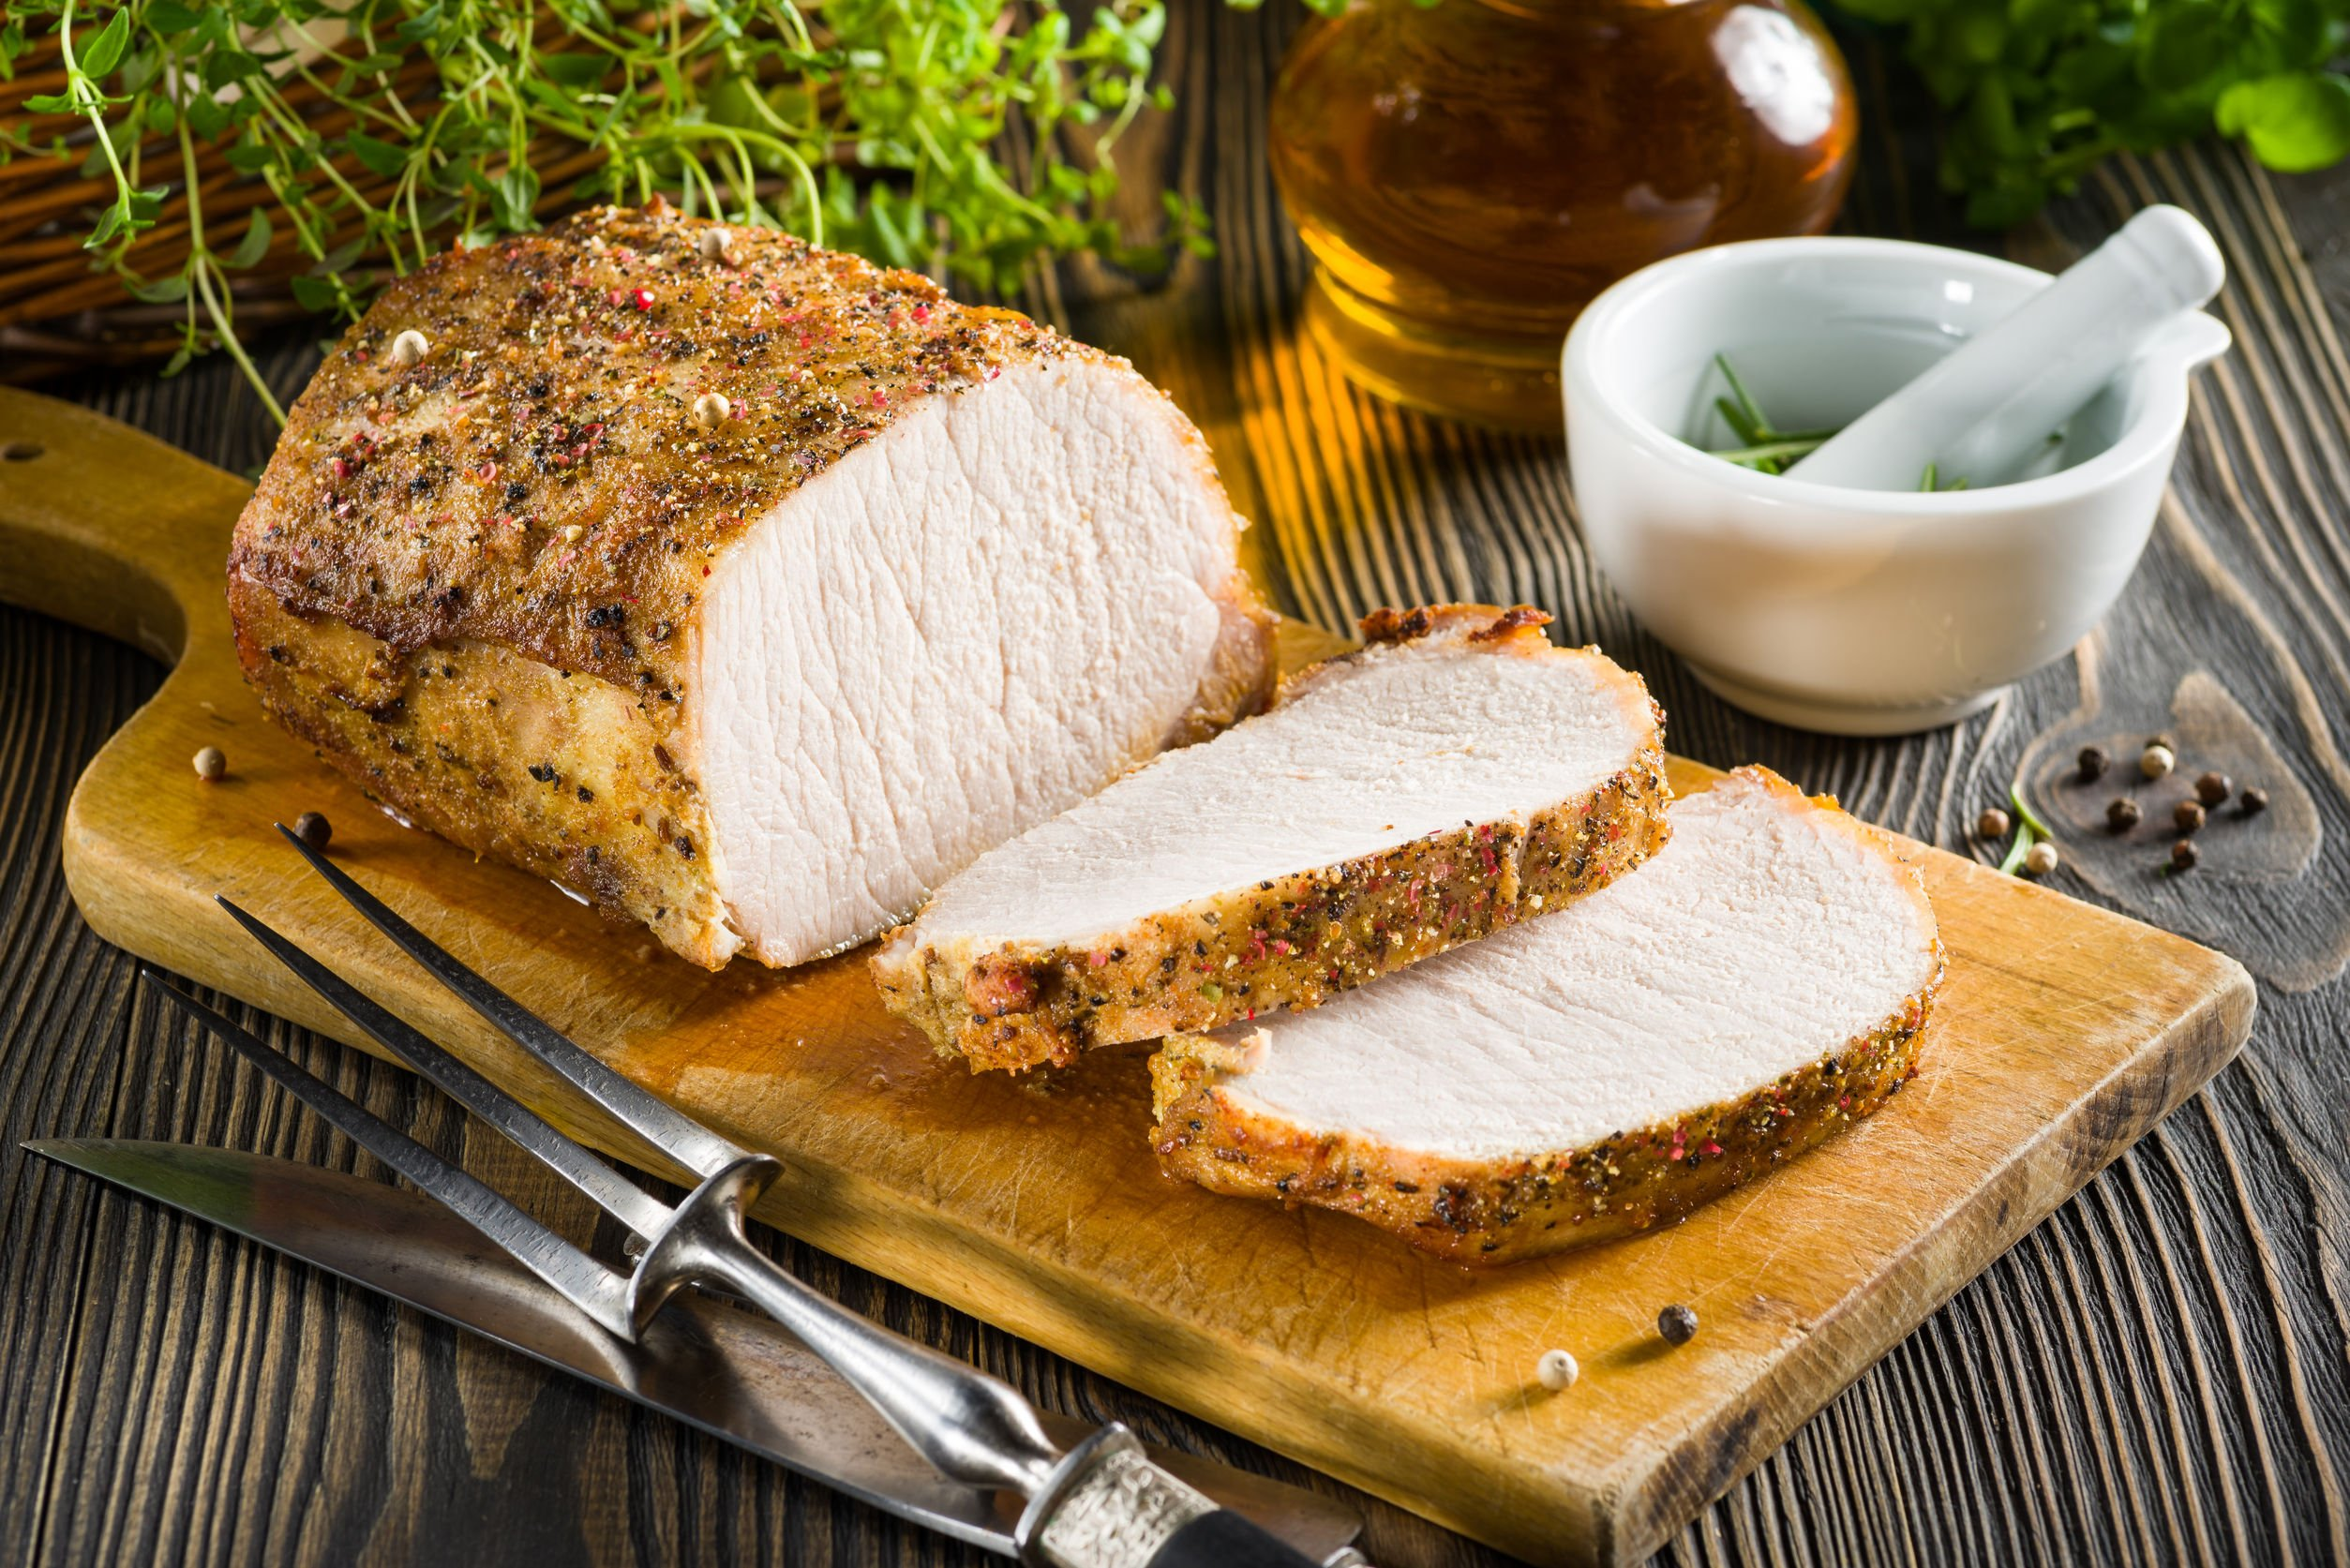 39024999 - roasted pork loin on the wooden table